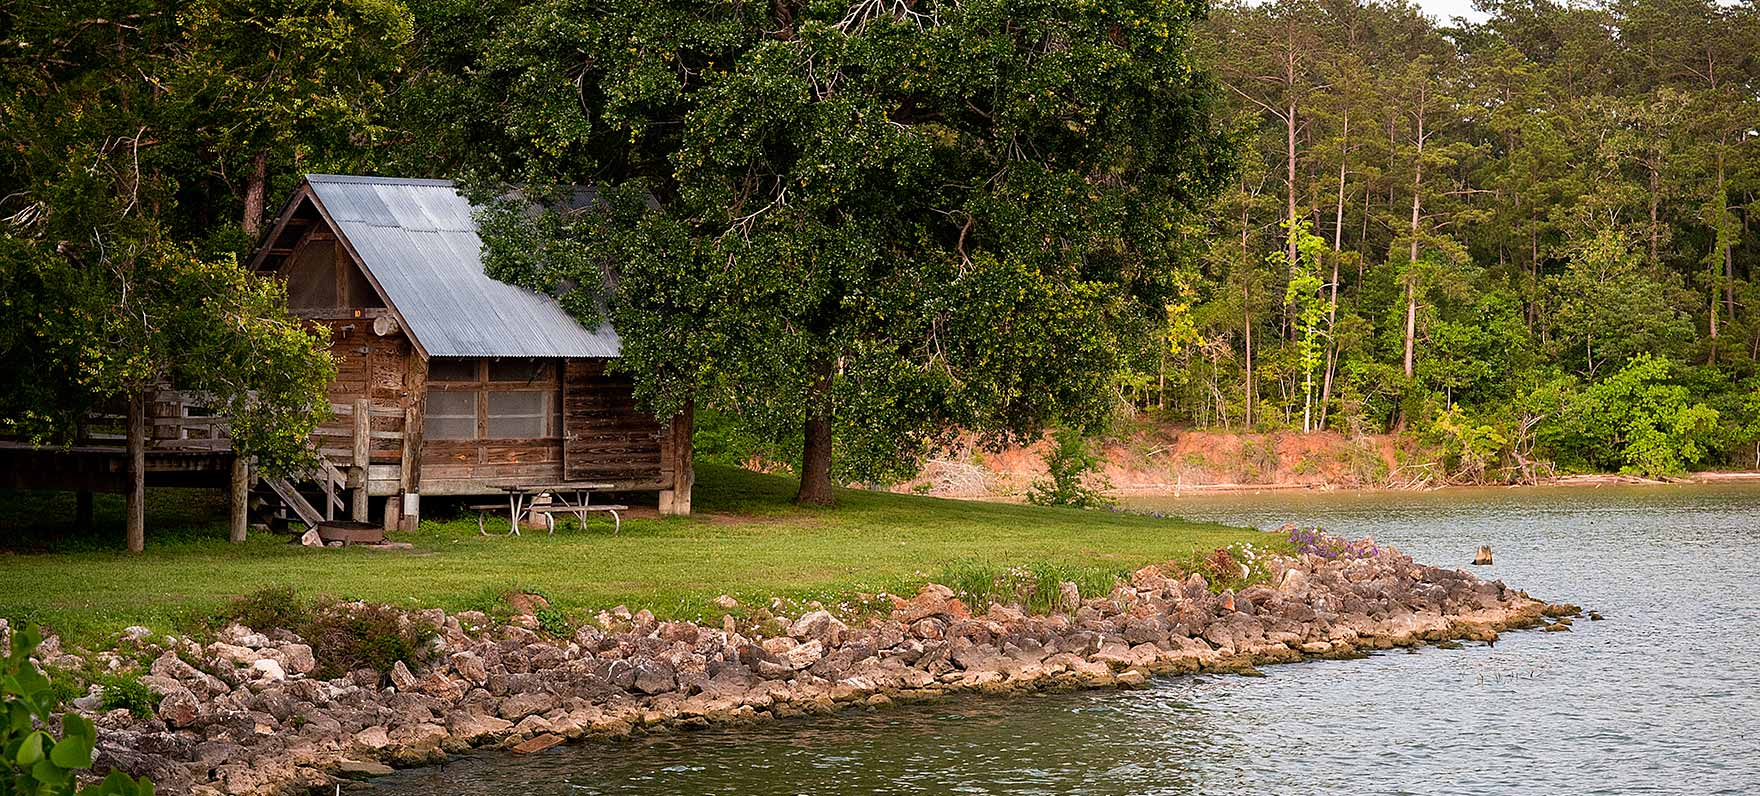 Lake livingston state park texas parks wildlife department for Campsites with fishing